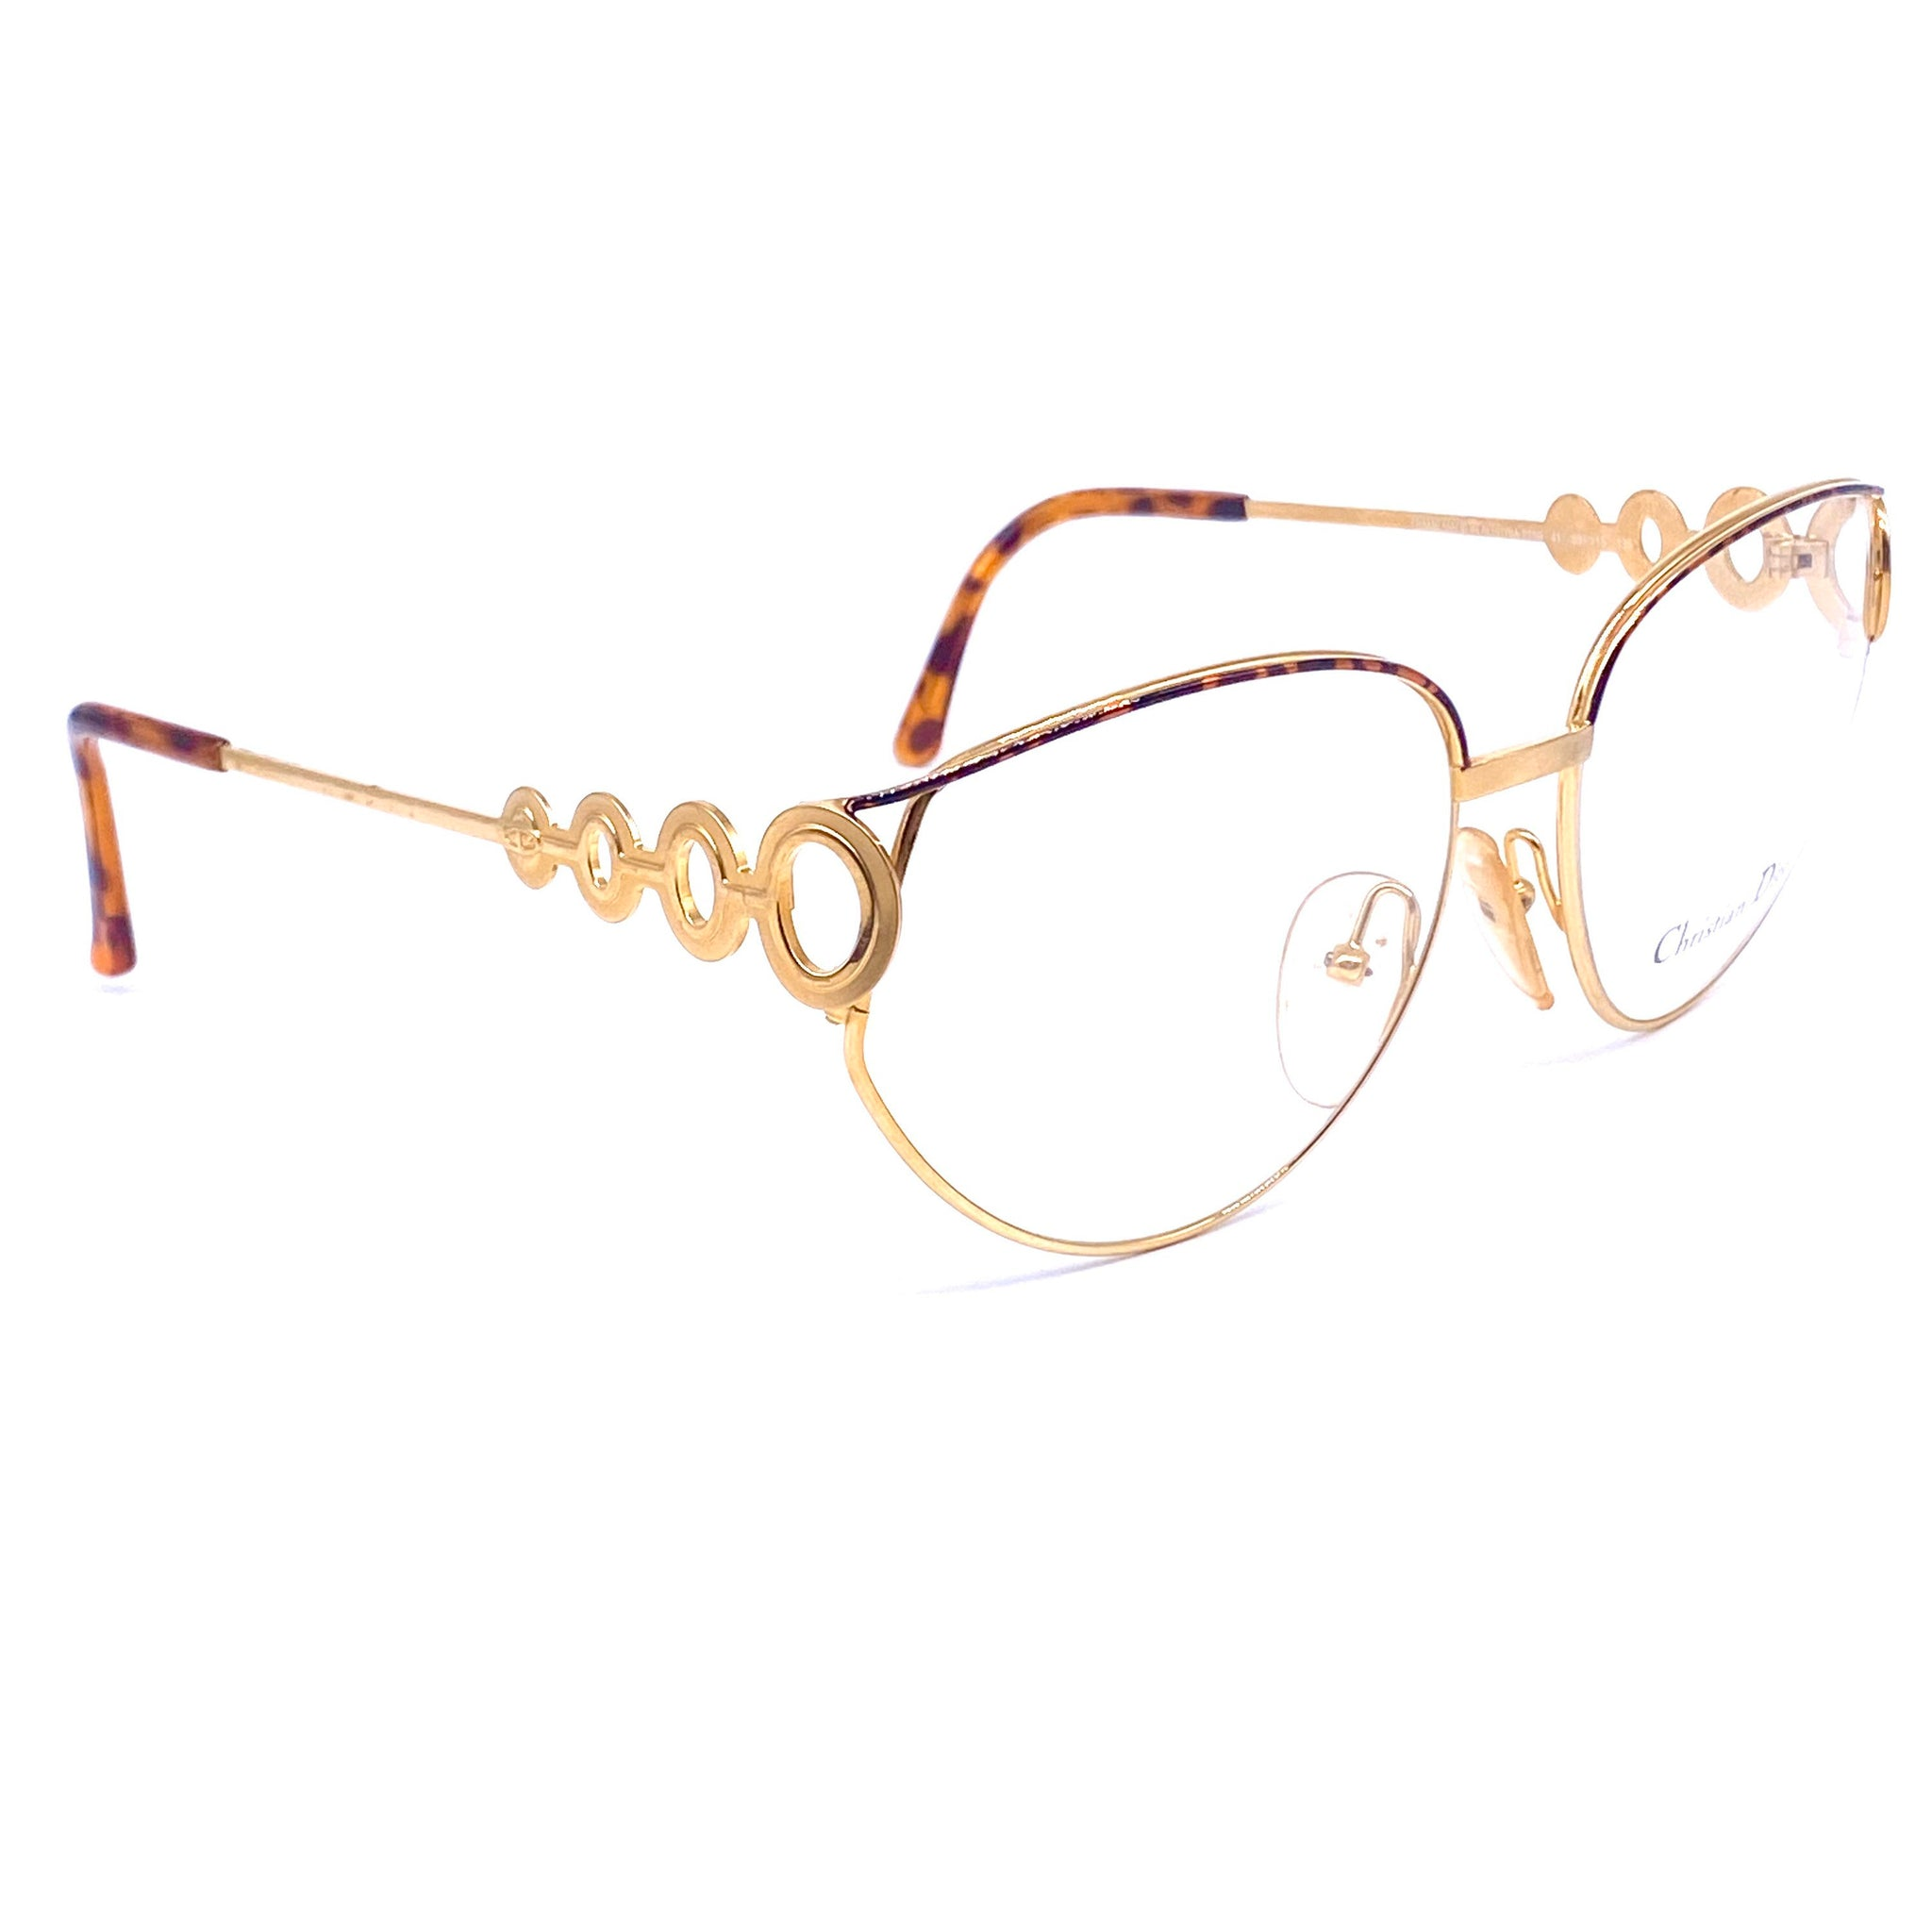 Christian Dior 2750 golden cateye oversized eyeglasses, space age cutoff oblò details, 1980s NOS - viceversashop